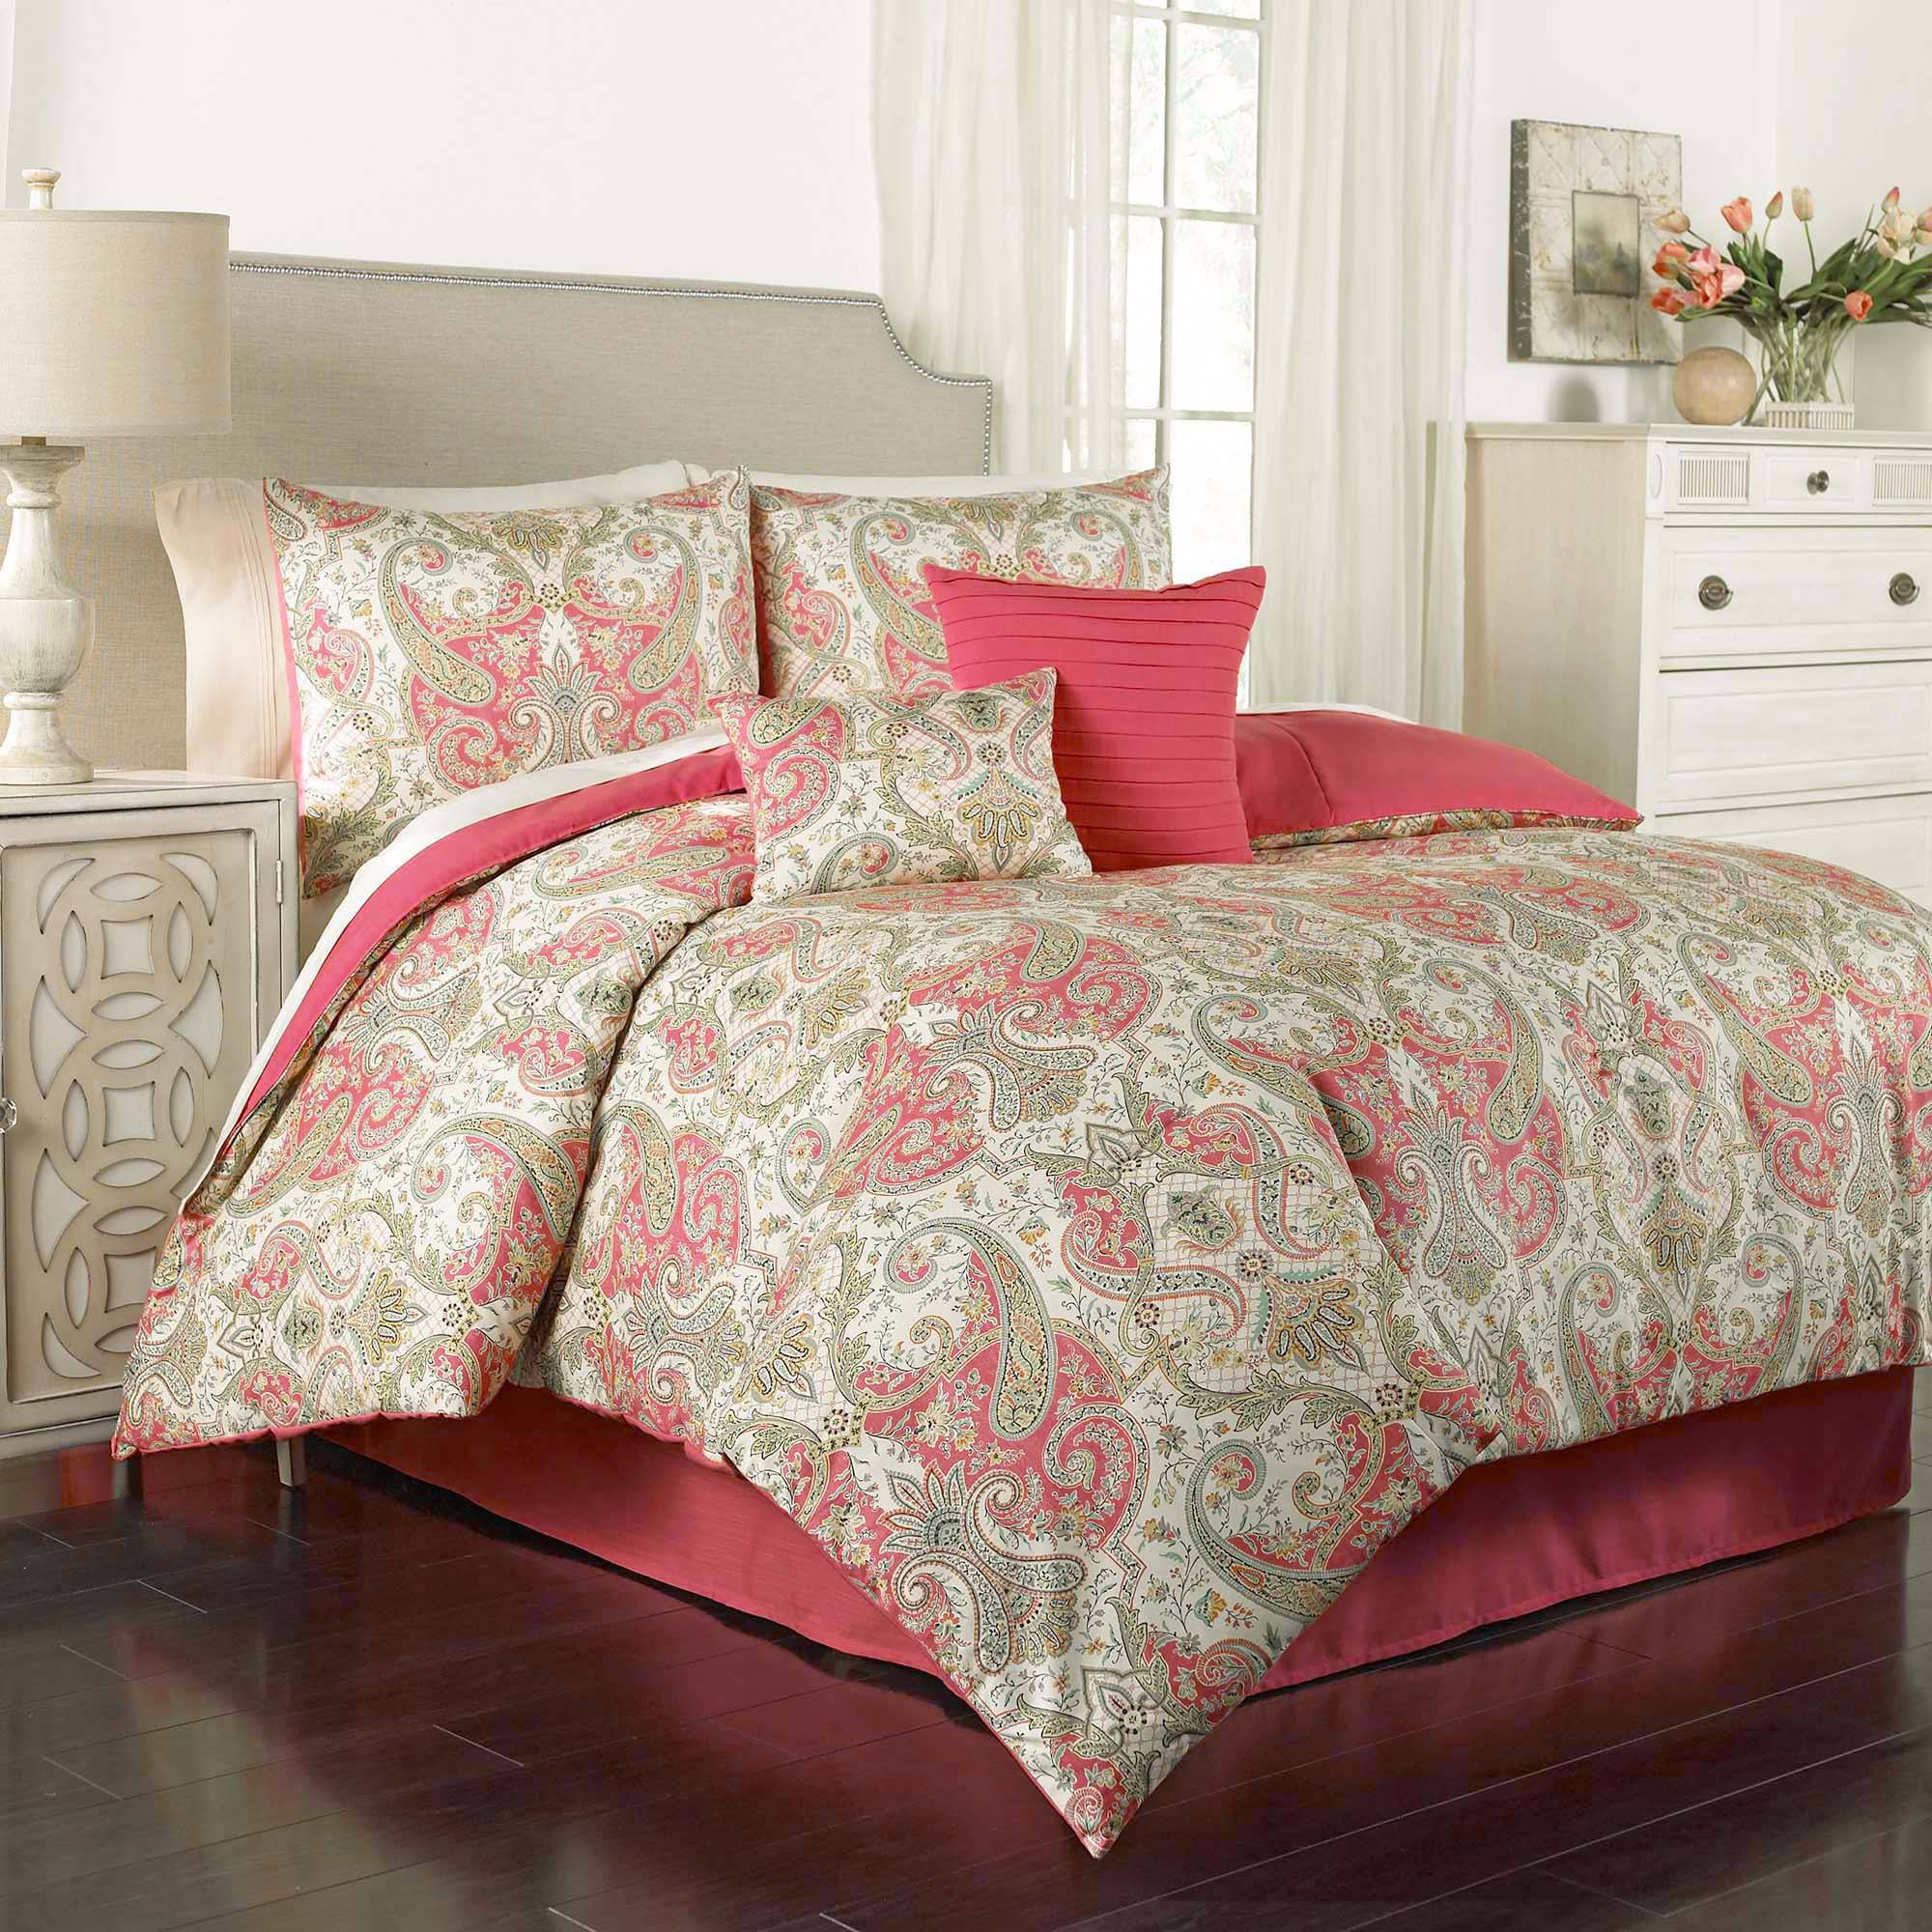 Nice Traditions By Waverly Lyrical Legend 6 Piece Bedding Comforter Set